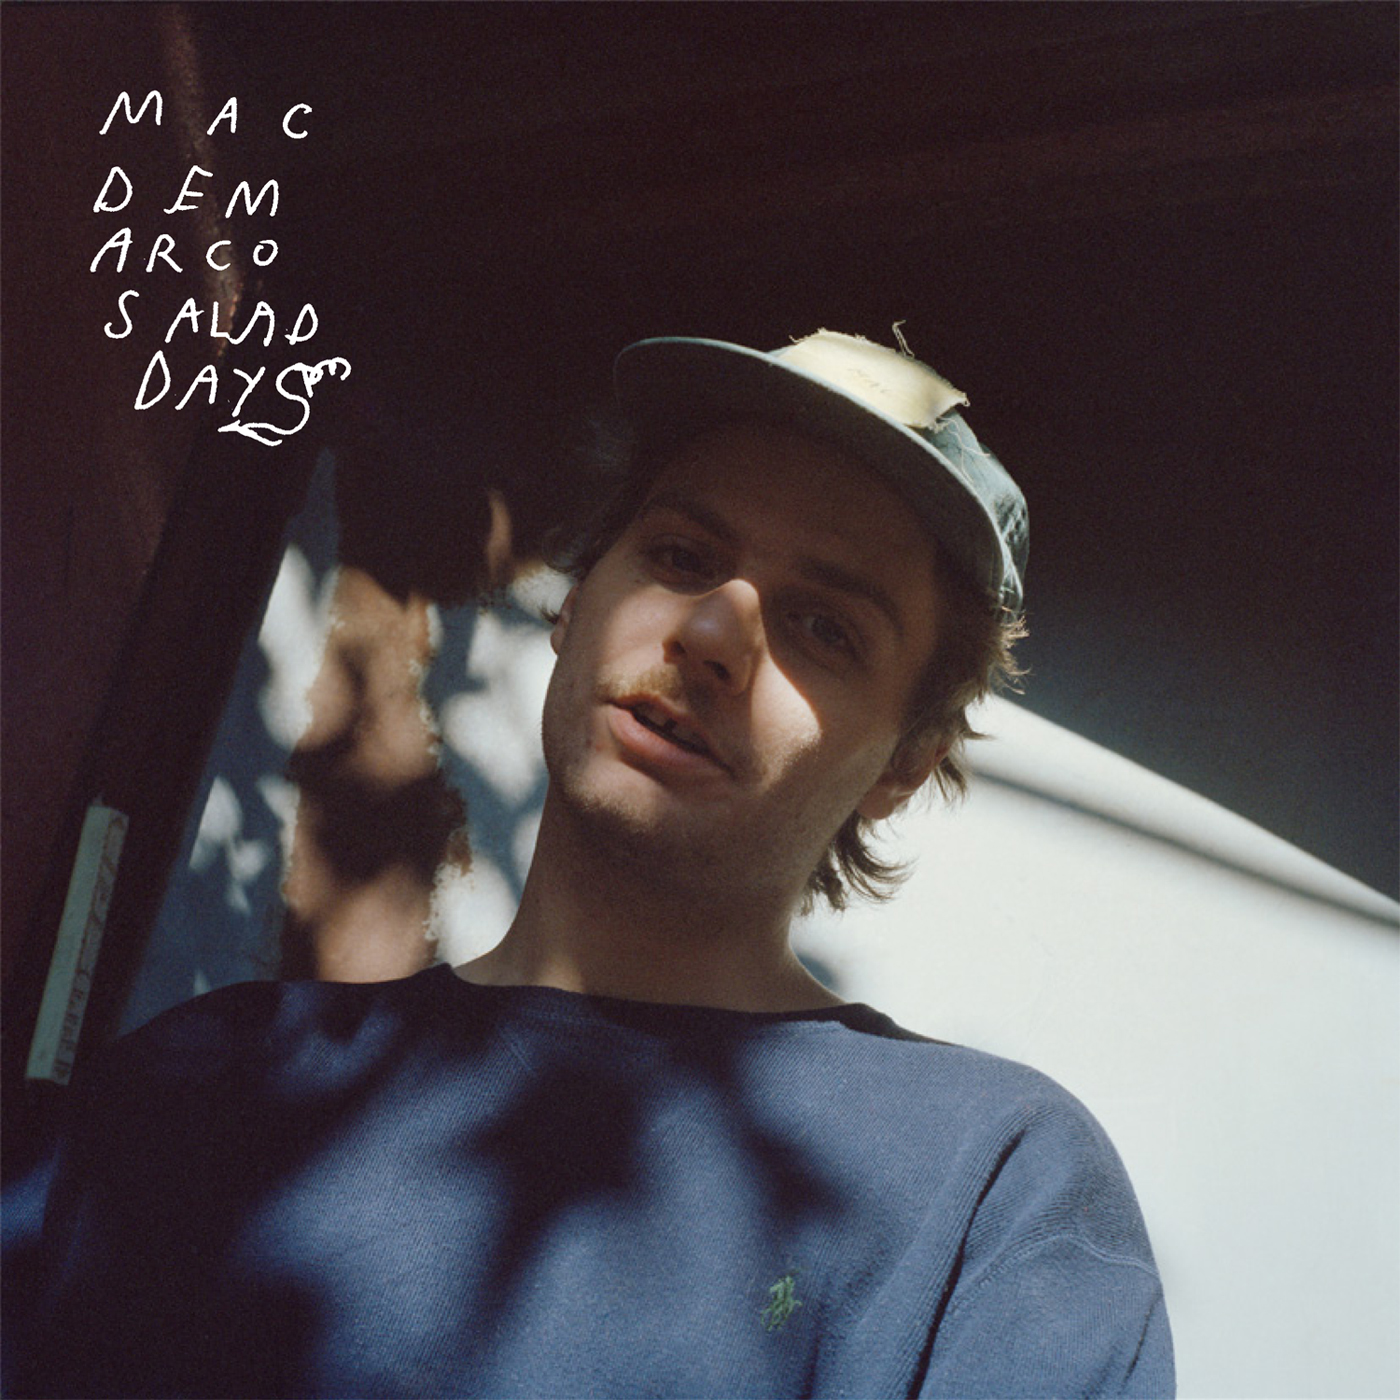 Salad Days, $20 from JB Hifi | Mac Demarco will be playing at next years Laneway Festival!